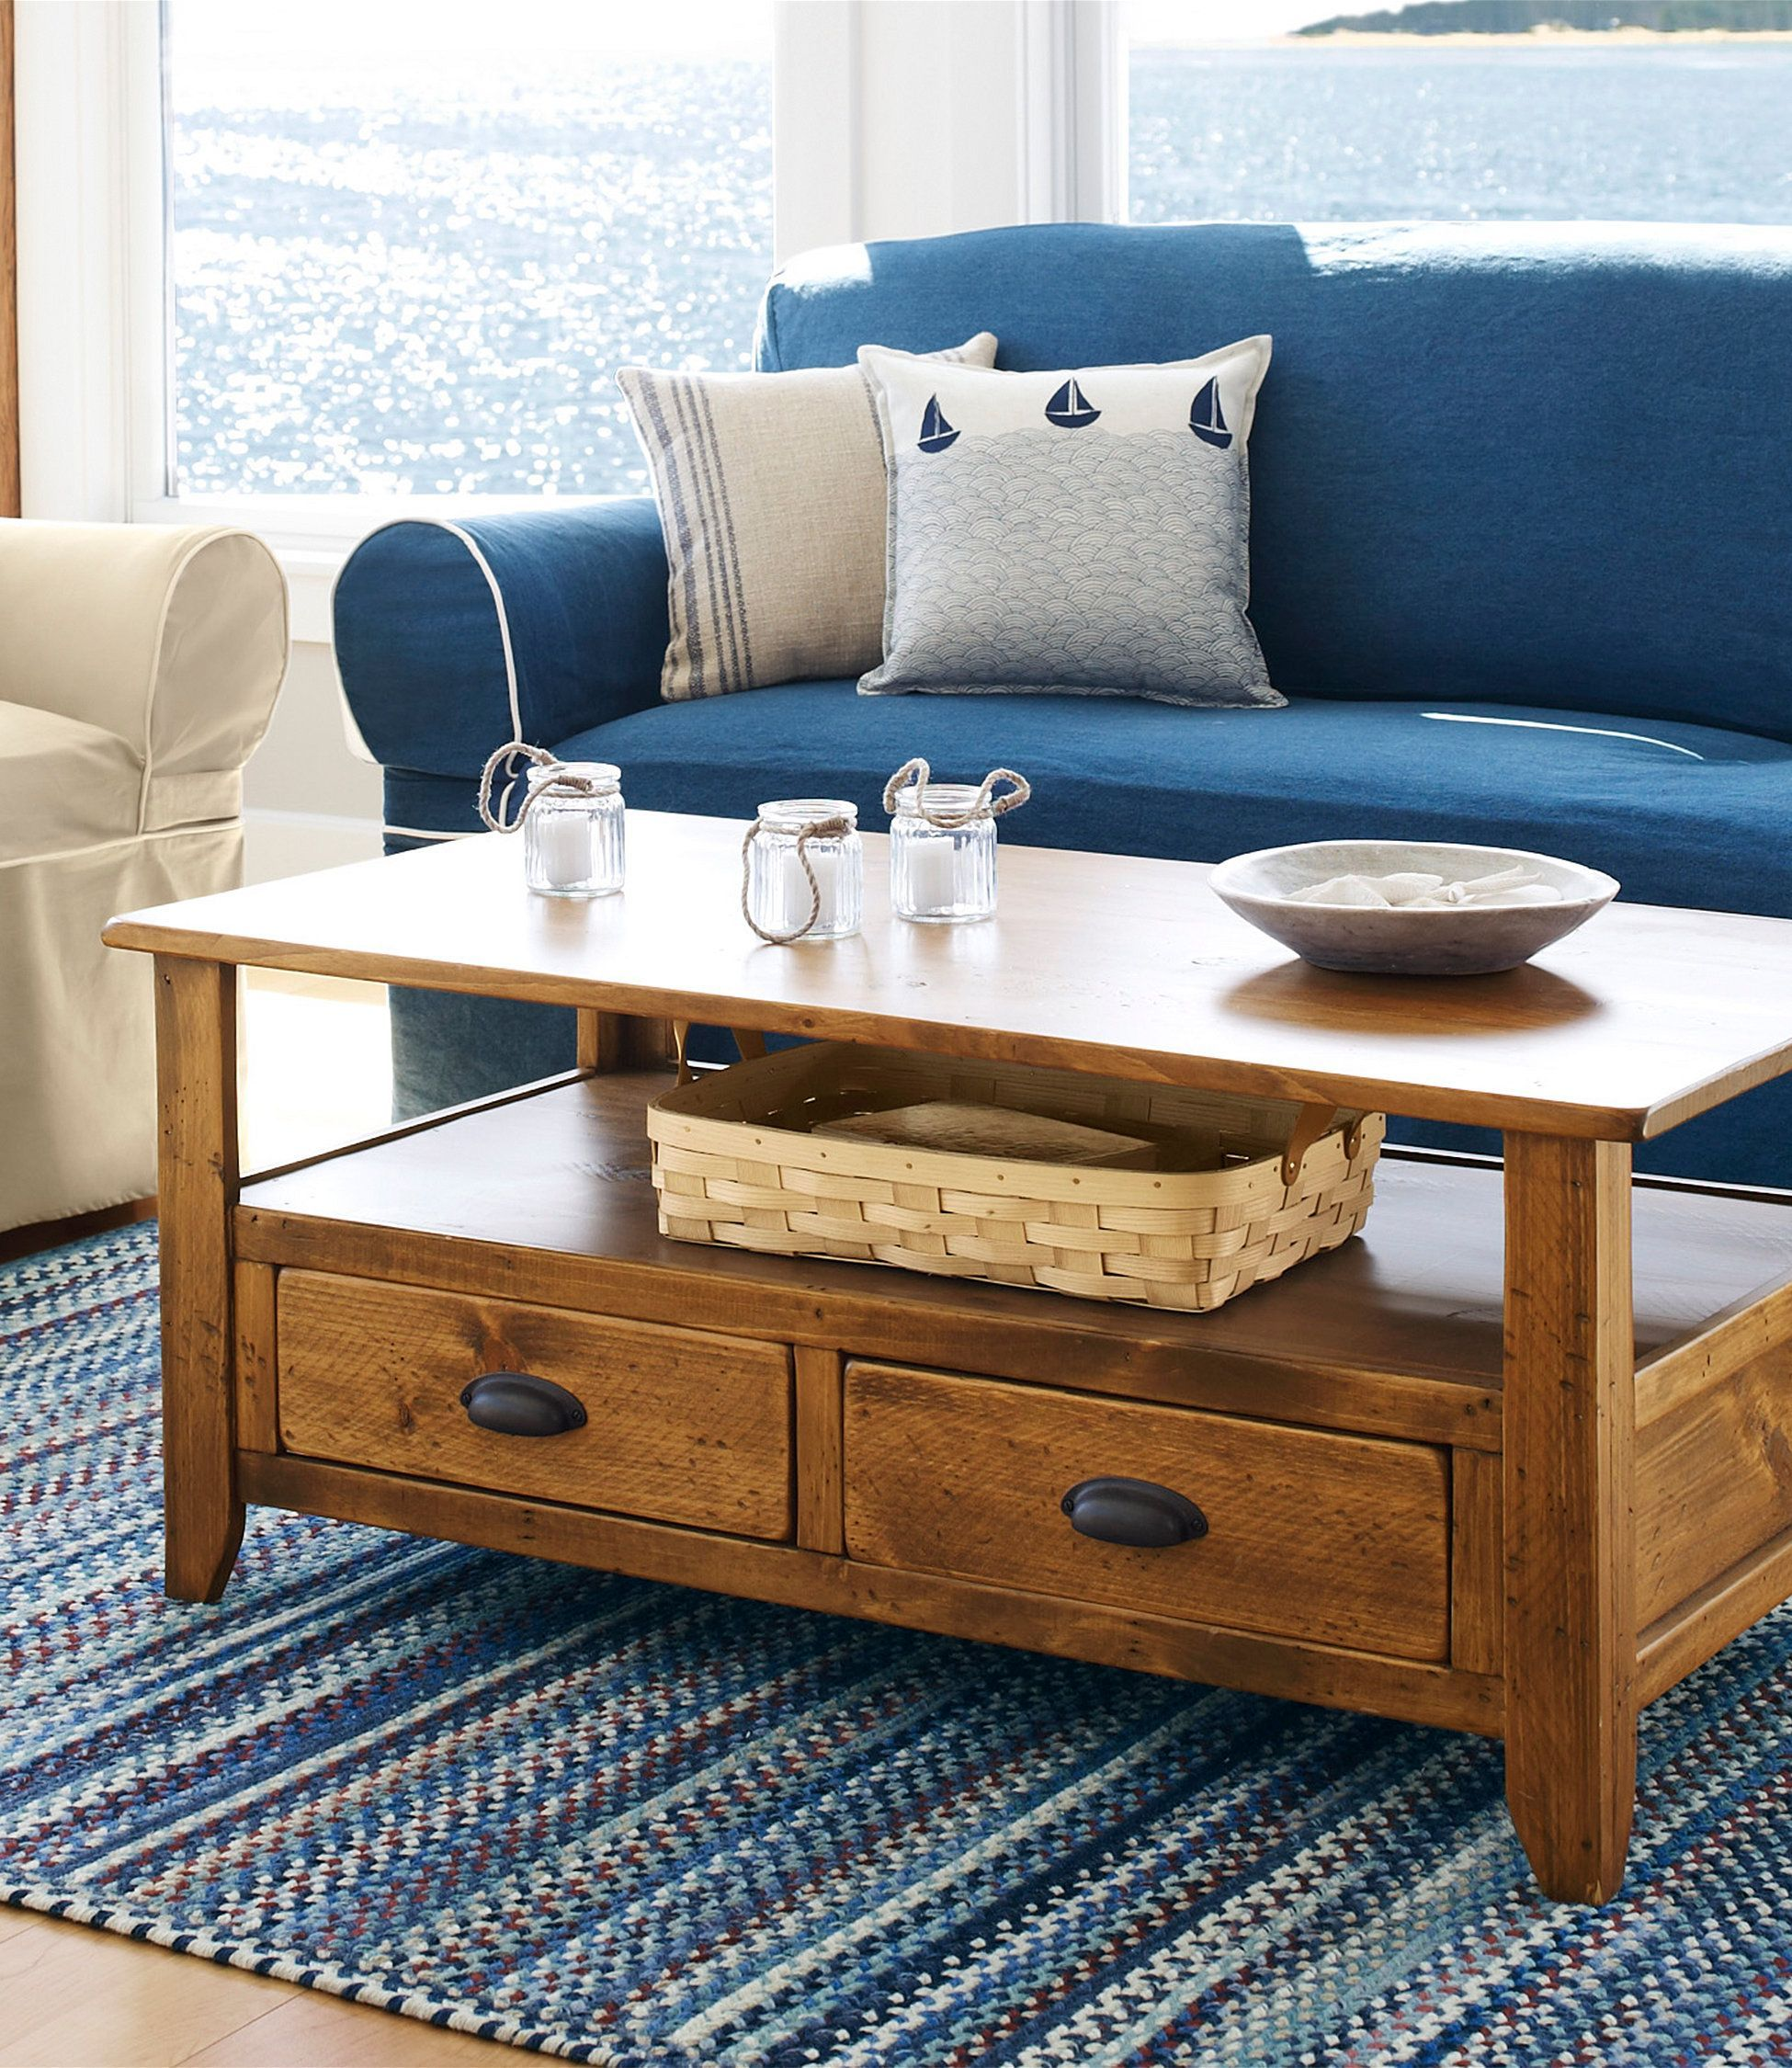 Rustic Wooden Coffee Table In 2020 Coffee Table Rustic Wooden Coffee Table Furniture [ 2250 x 1950 Pixel ]